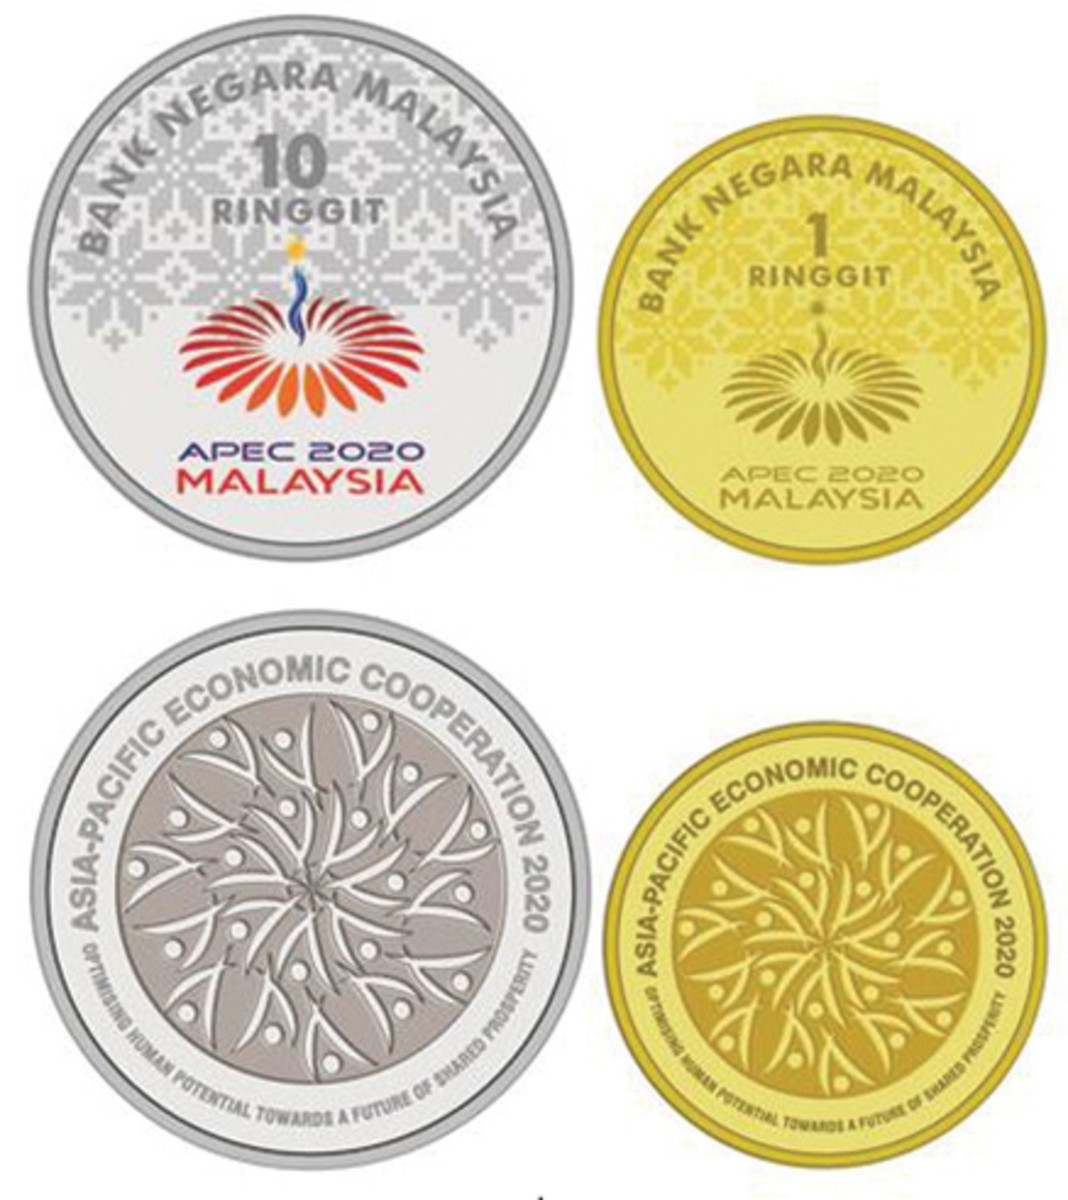 The symbolic design of 21 human figures in harmony on these new coins from Malaysia reflects the 21 APEC member economies cooperating as they strive for a future of shared prosperity.